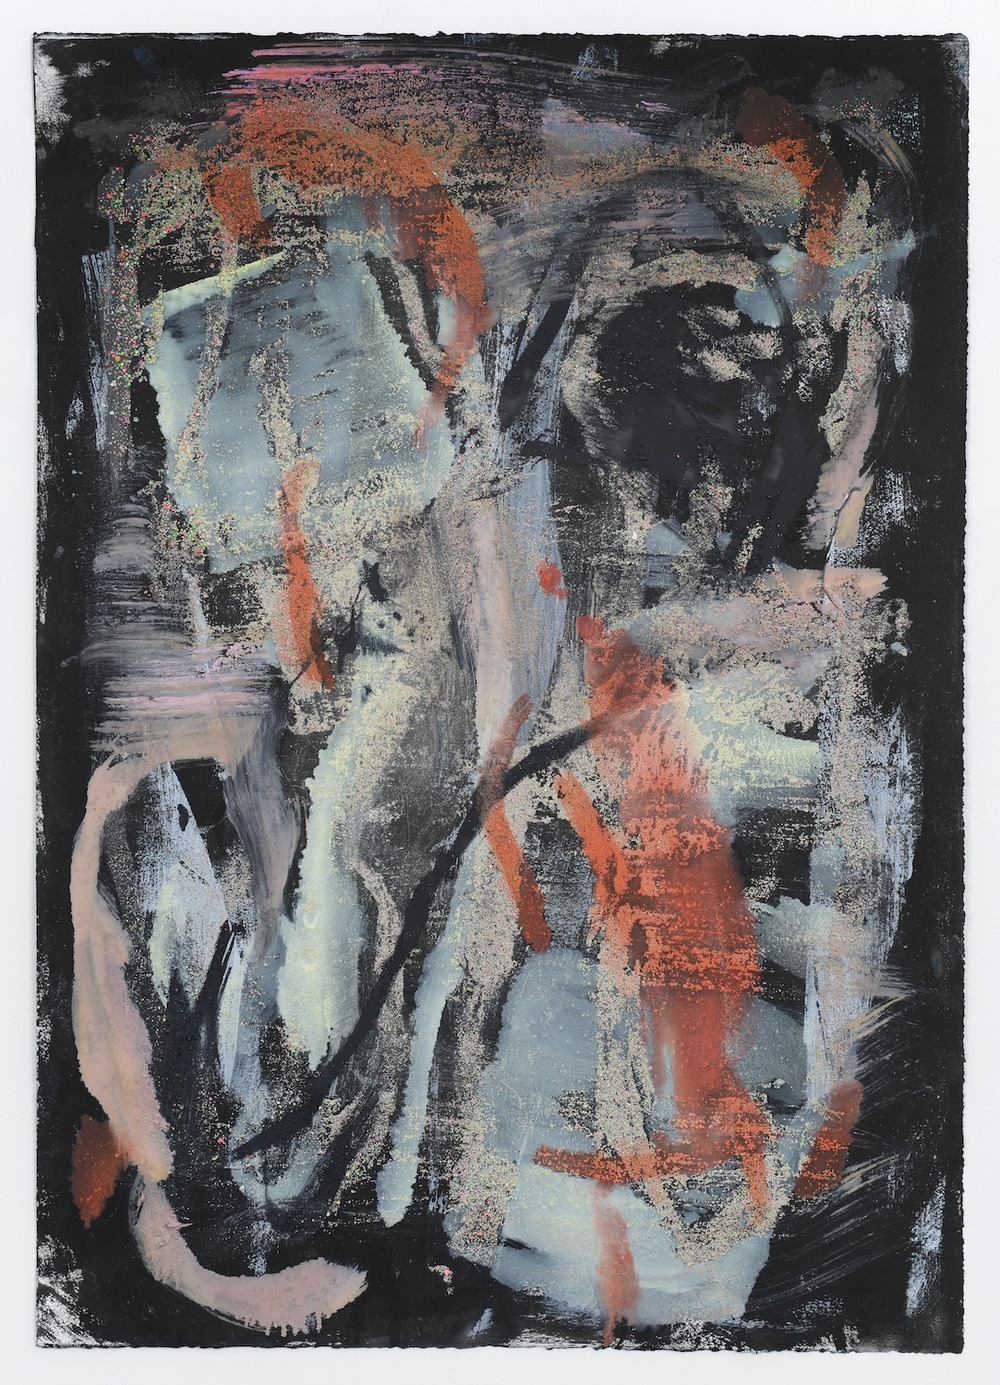 "Jon Pestoni Untitled 2013 Oil and mixed media on paper 40"" x 30"" JP151"